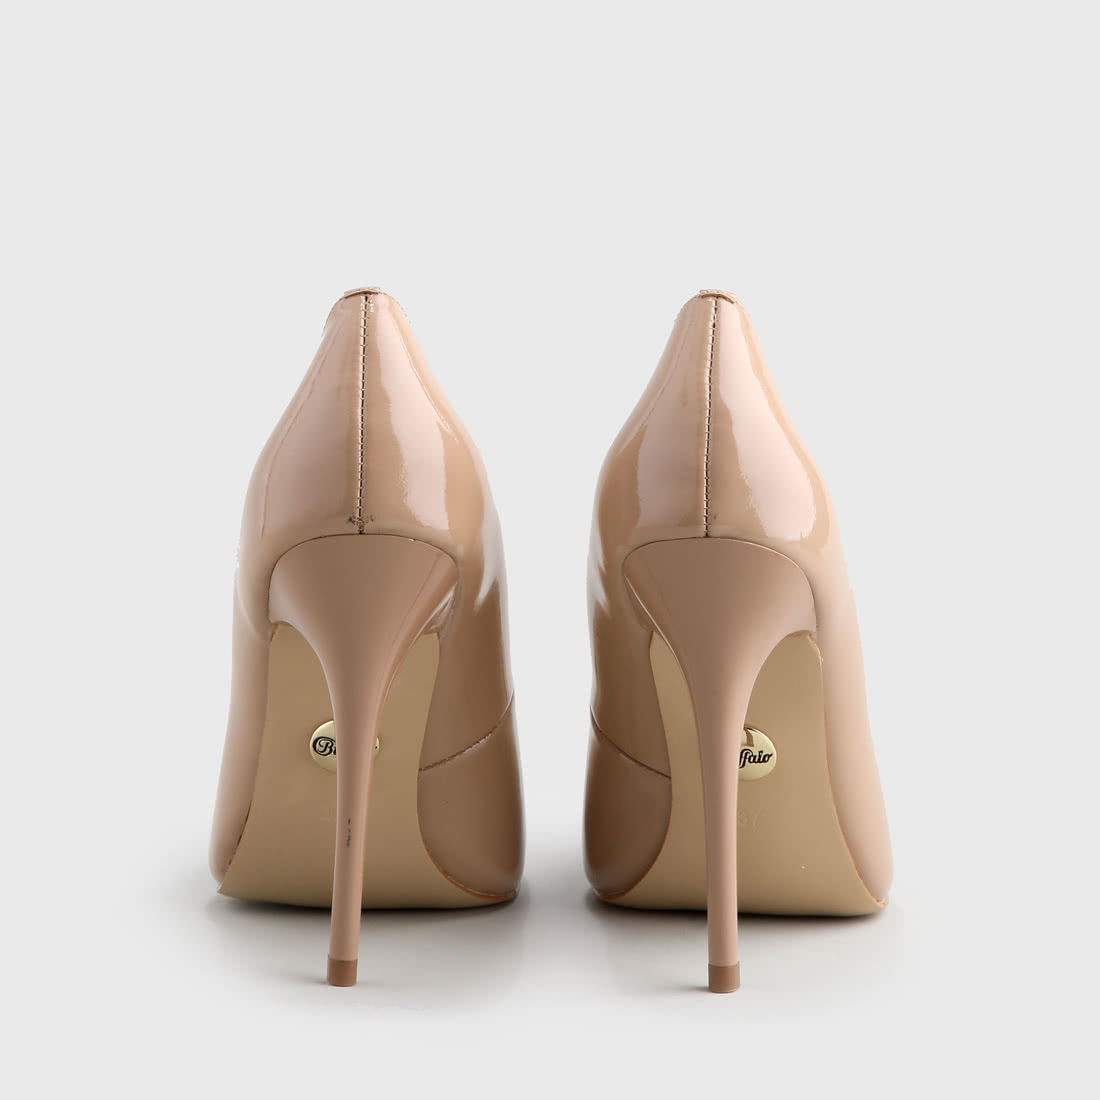 Buffalo pointy pumps patent leather 11 cm beige